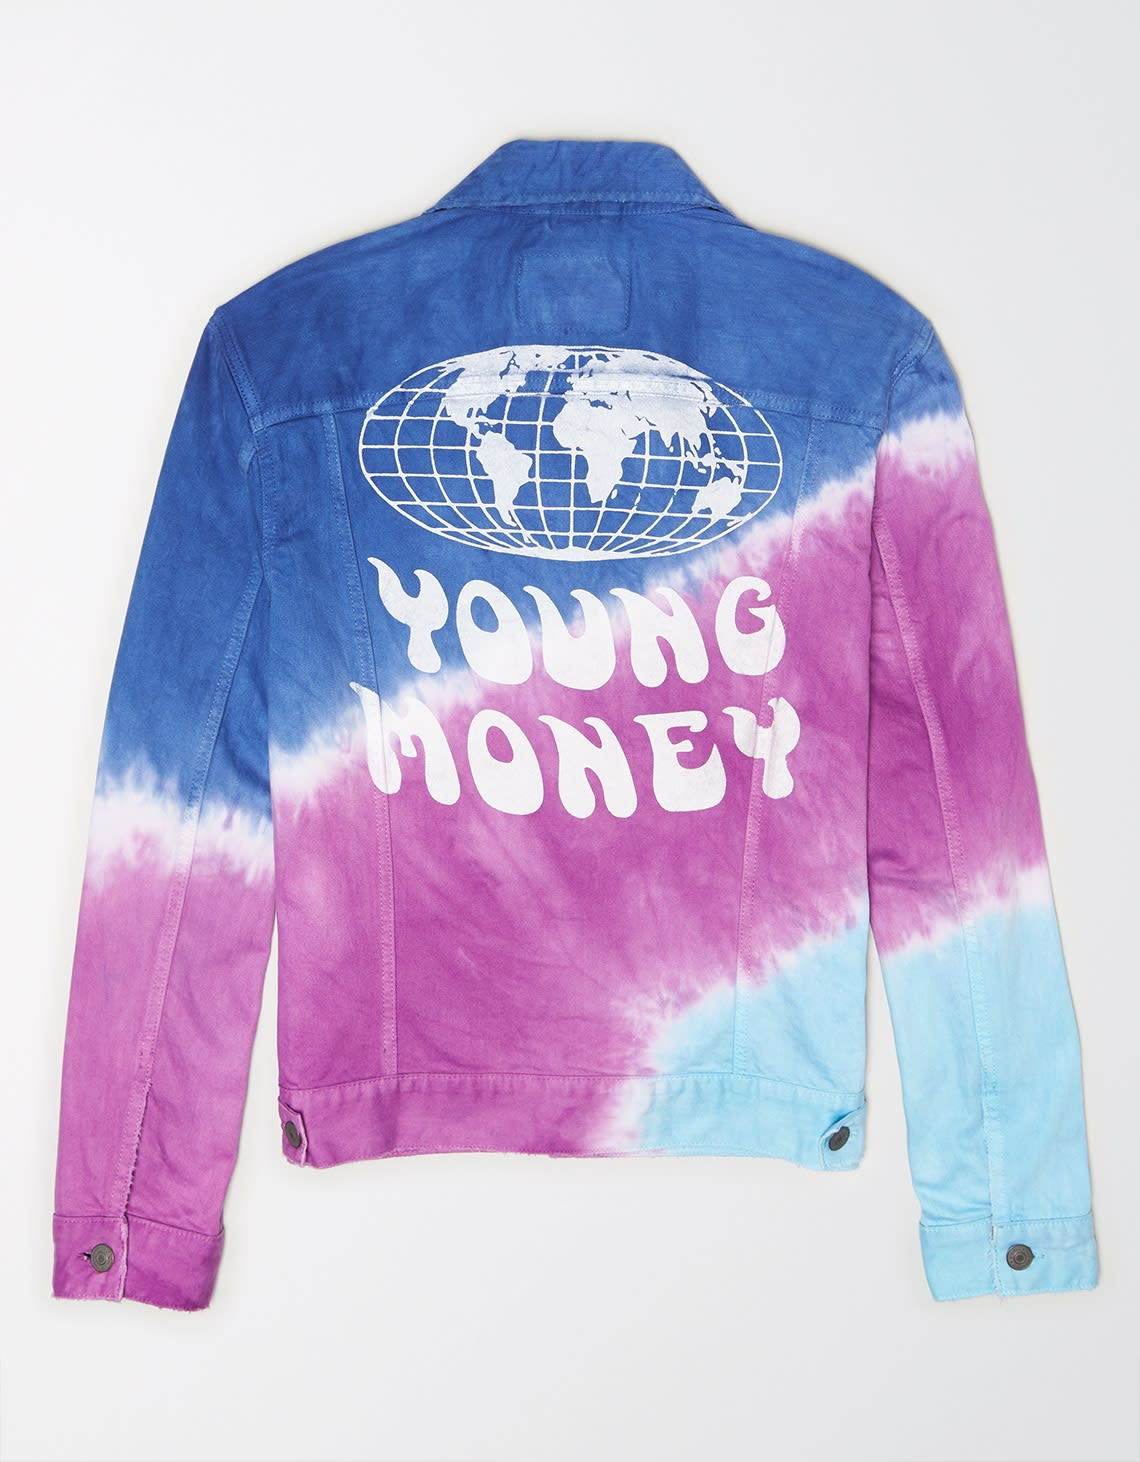 Lil Wayne AE x Young Money Collection